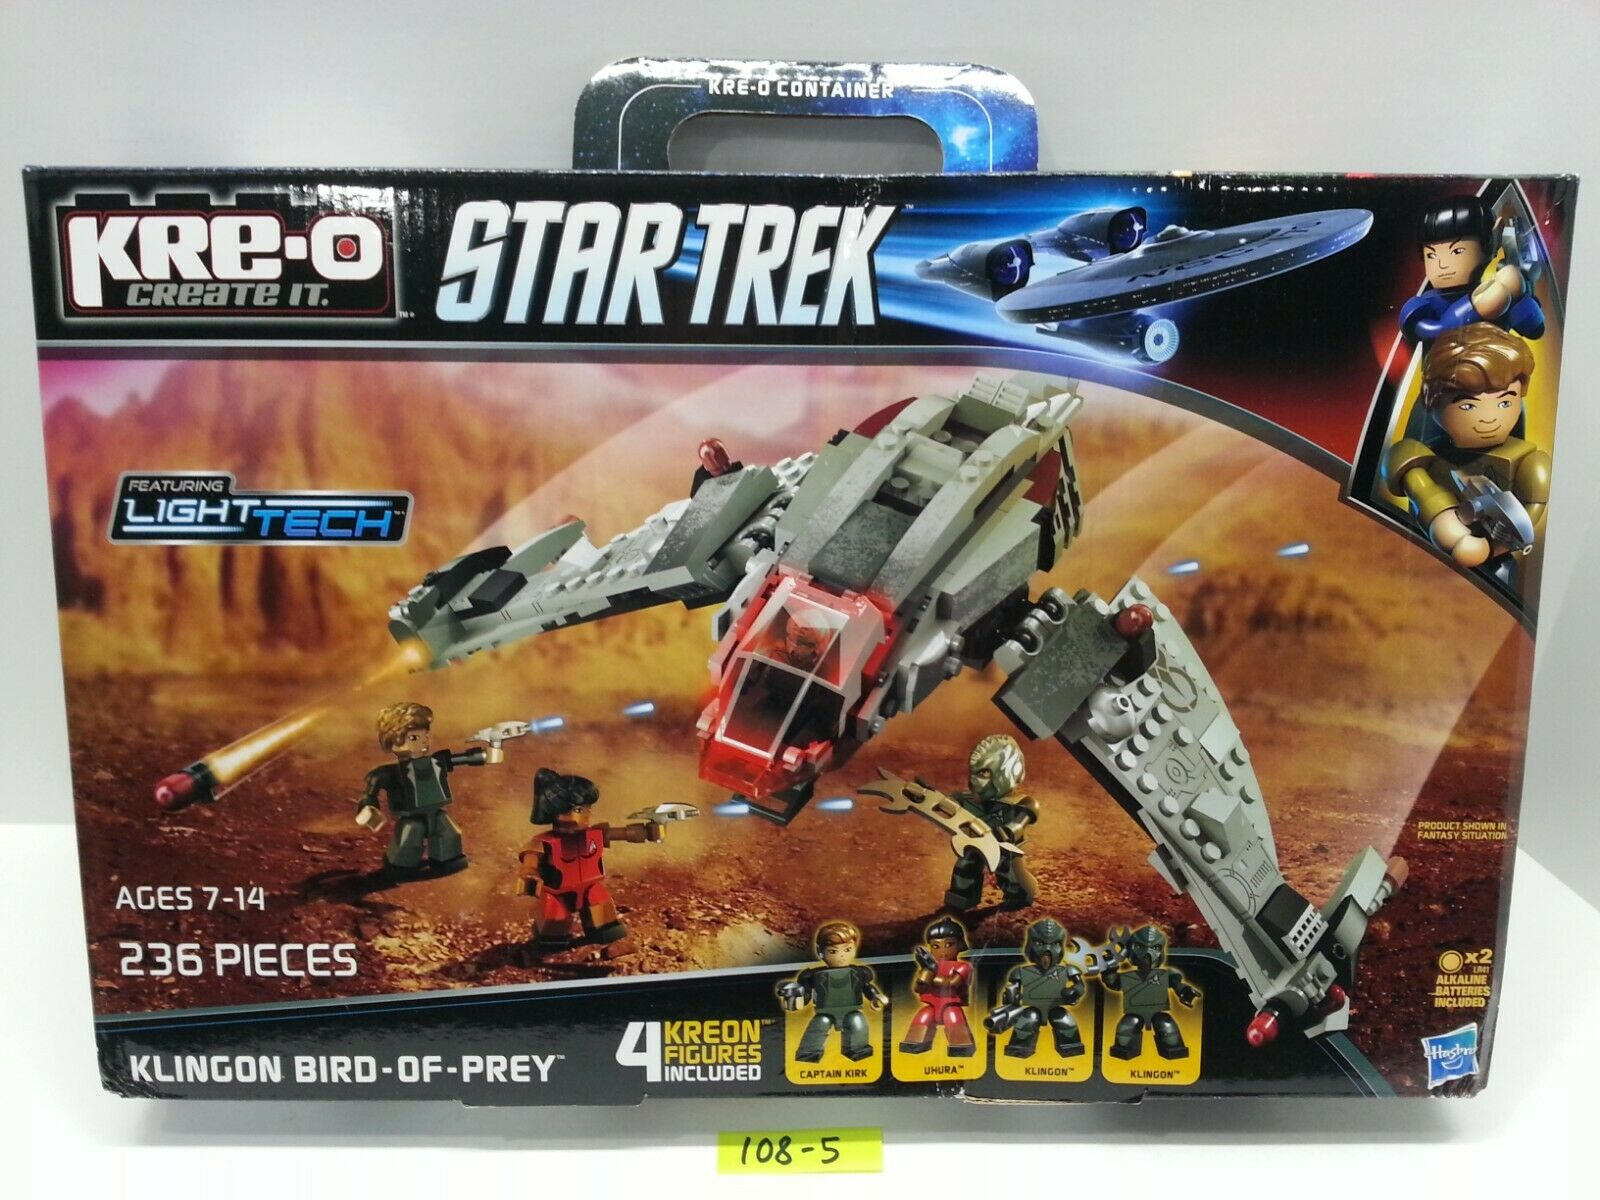 KRE-O Star Trek Trek Trek A3136 Klingon Bird of Prey Vehicle Construction Set NEW & SEALED f174a1